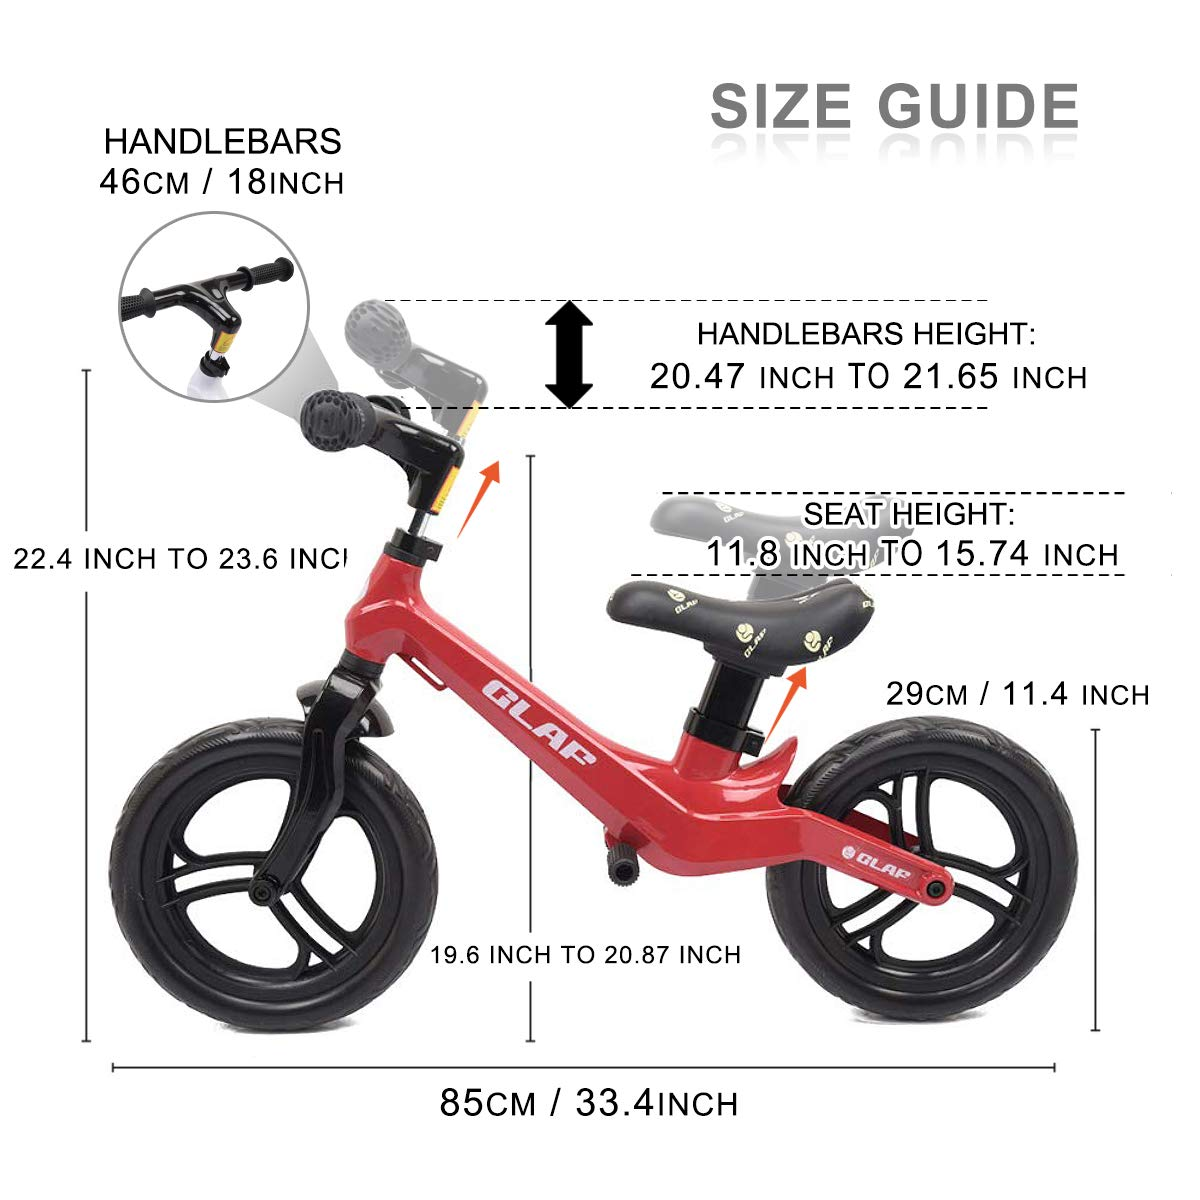 Glaf 12 inches Kids Balance Bike No Pedal Bicycle Walking Bicycle Children Toddler Balance Bike for Kids Adjustable Handlebar and Seat Training Running Bicycle for Ages 17 Month-5 Years Old (Red)